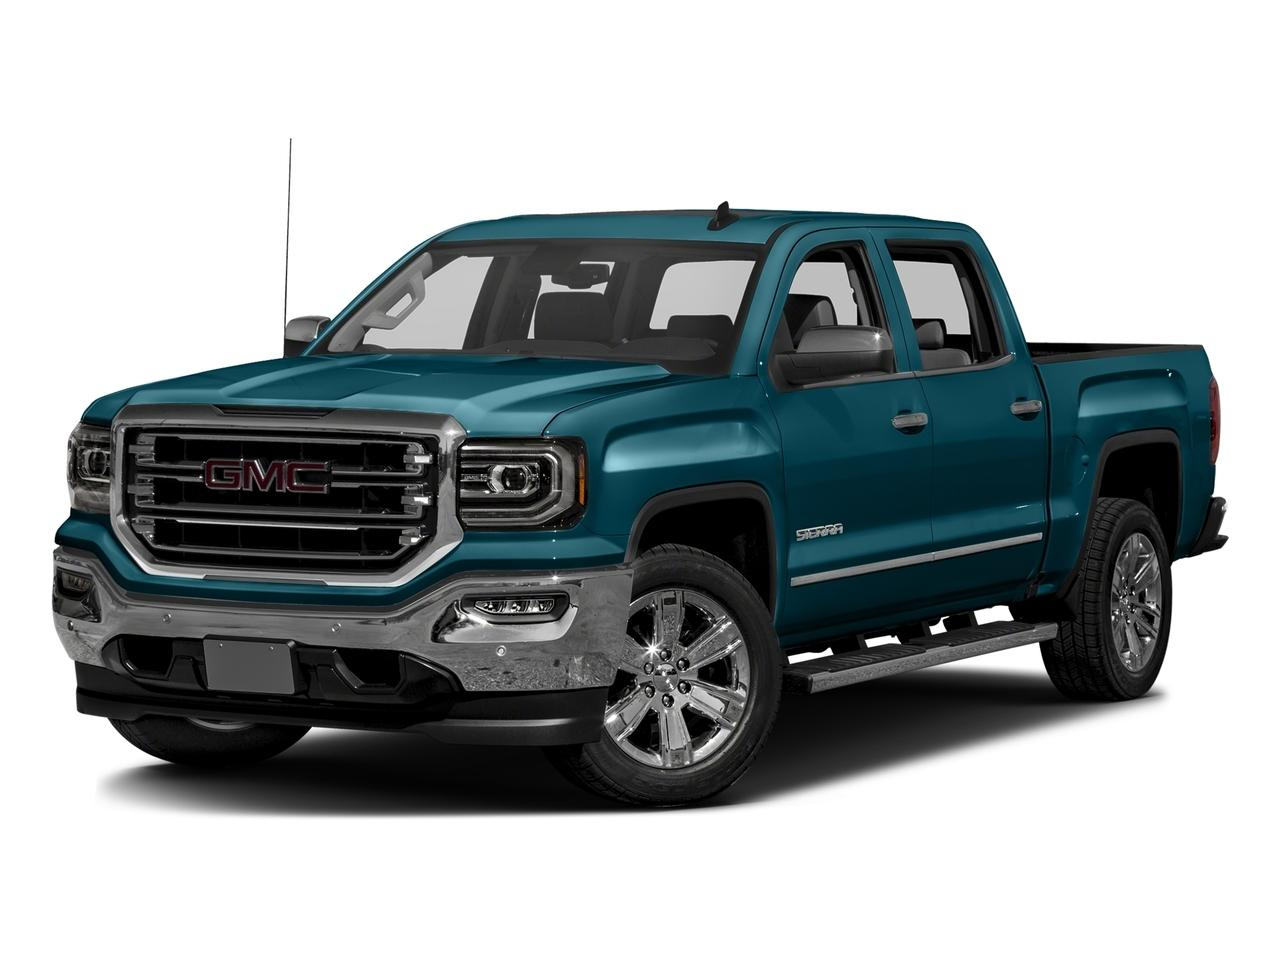 2017 GMC Sierra 1500 Vehicle Photo in Ocala, FL 34474